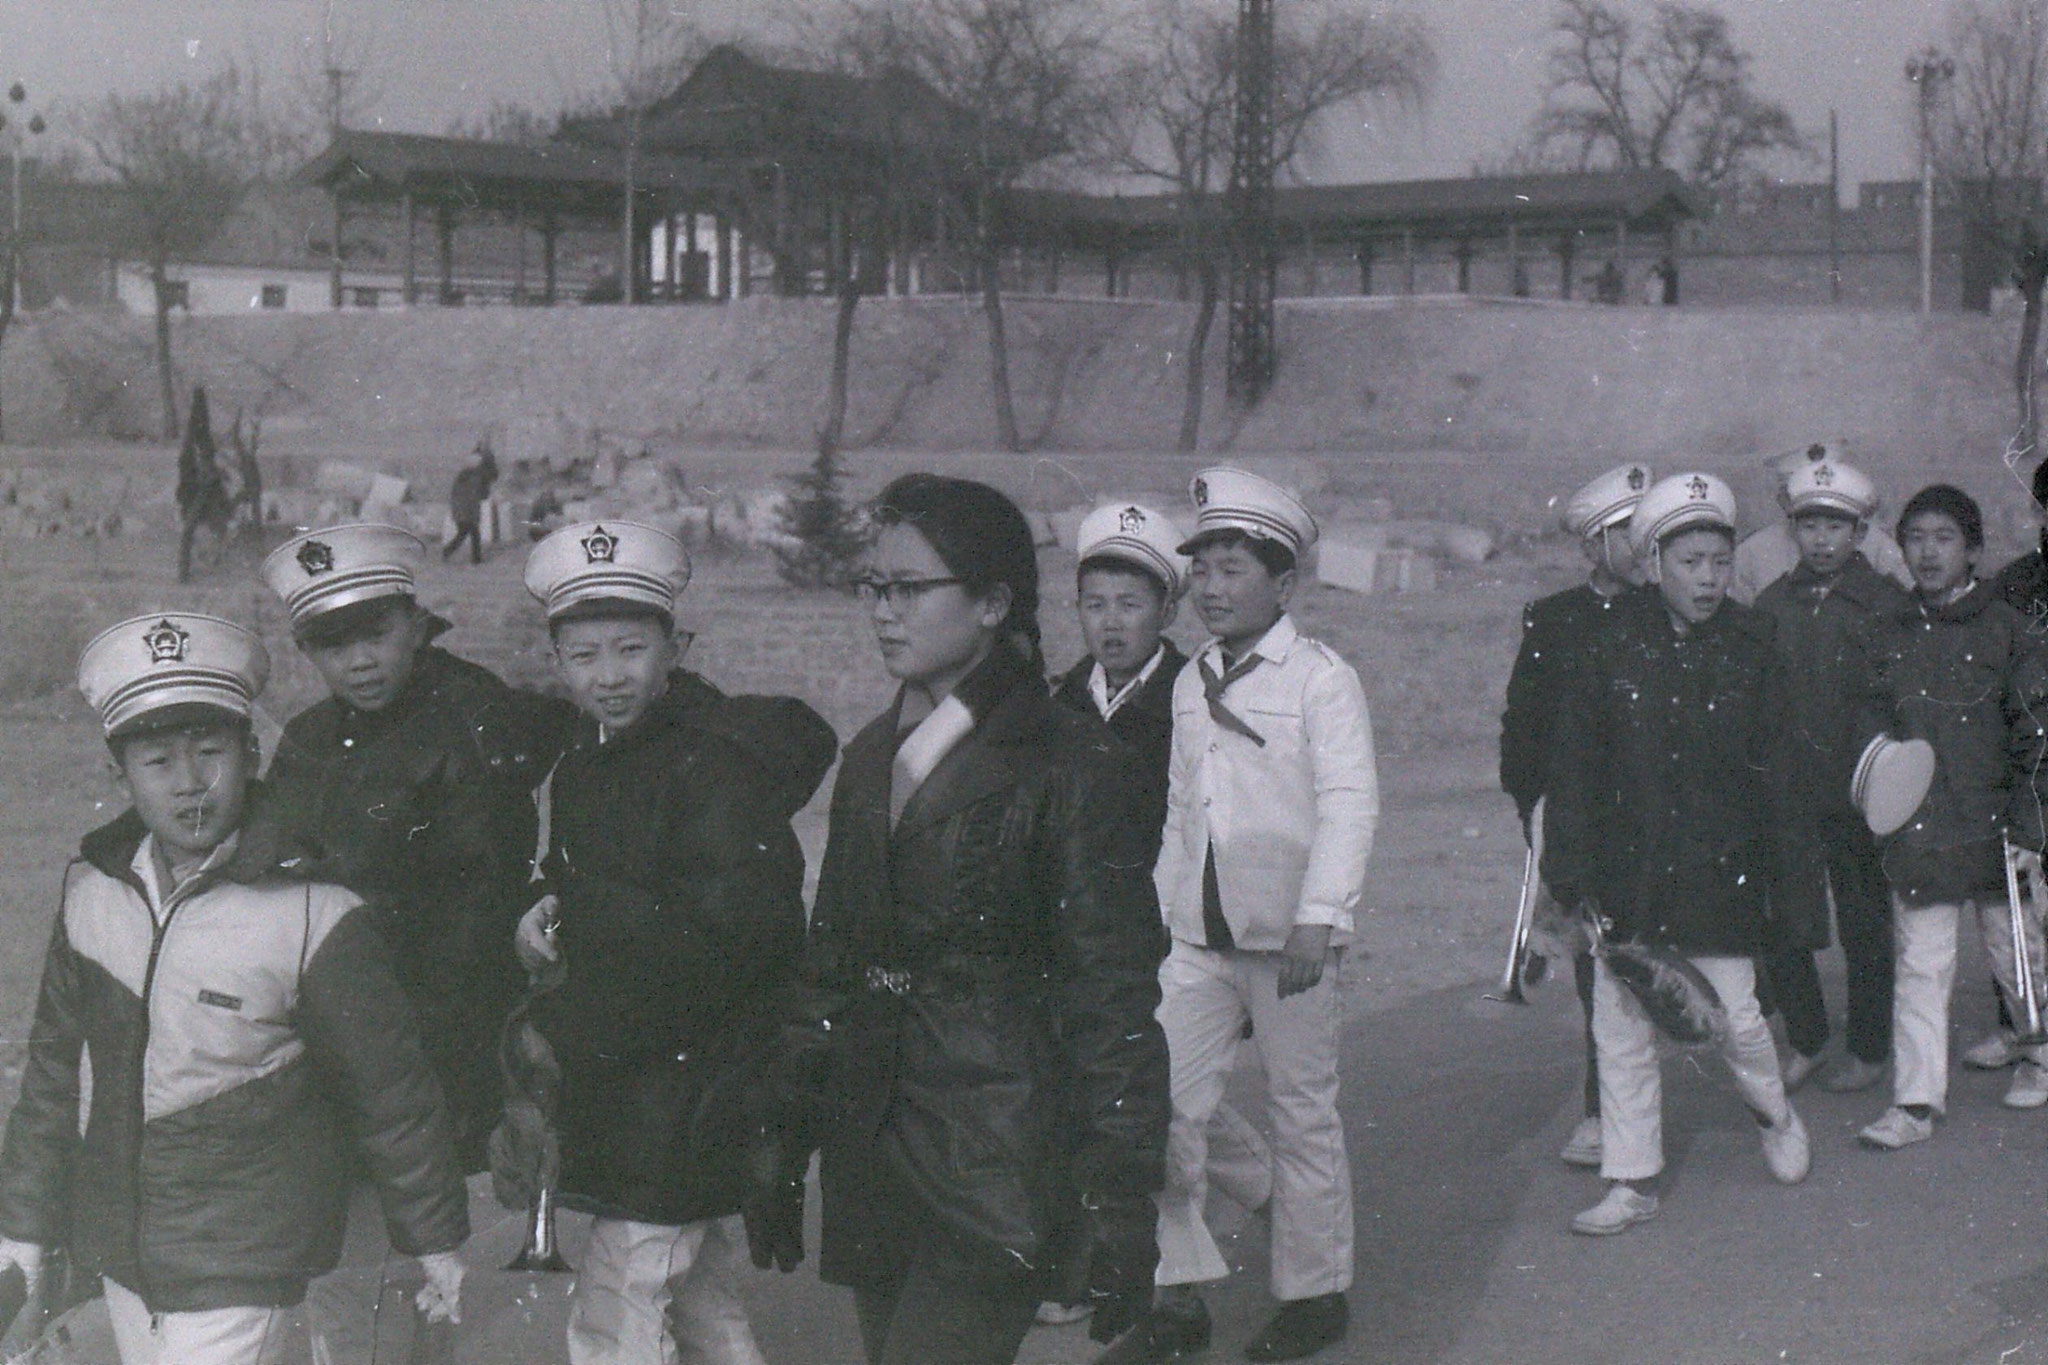 16/2/1989: 9: Weifang old city wall